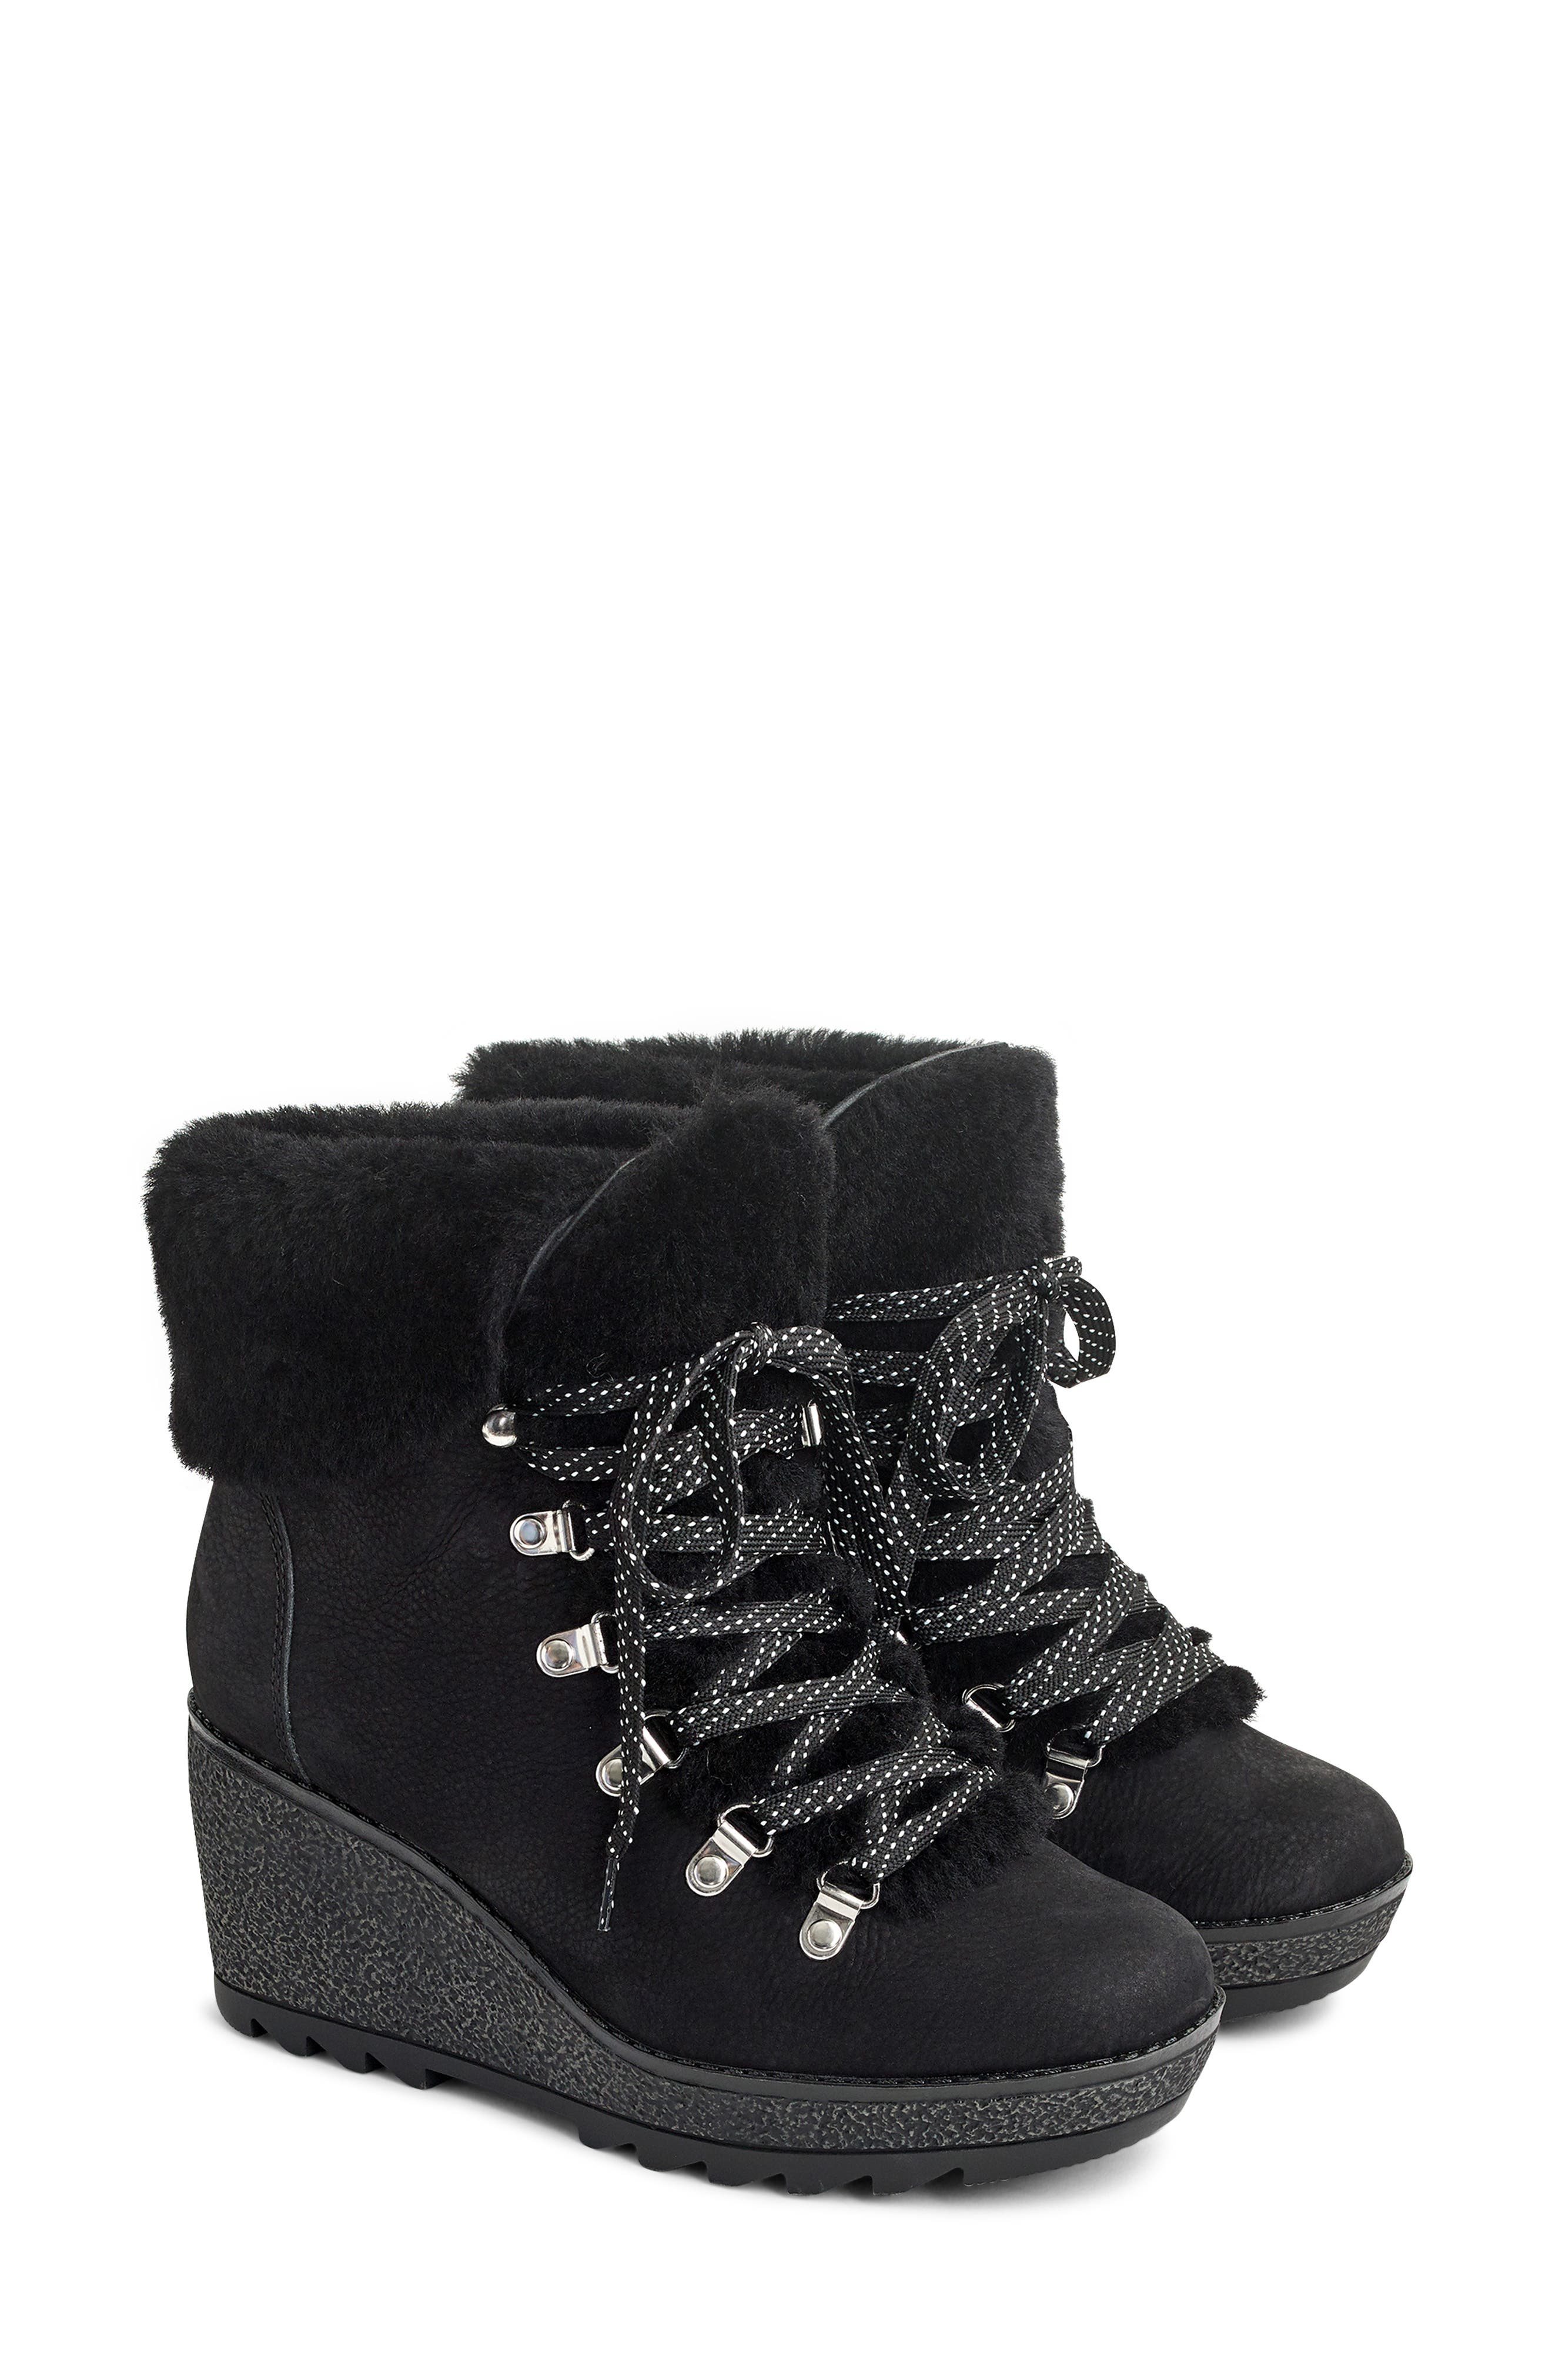 Nordic Wedge Bootie,                             Main thumbnail 1, color,                             BLACK LEATHER